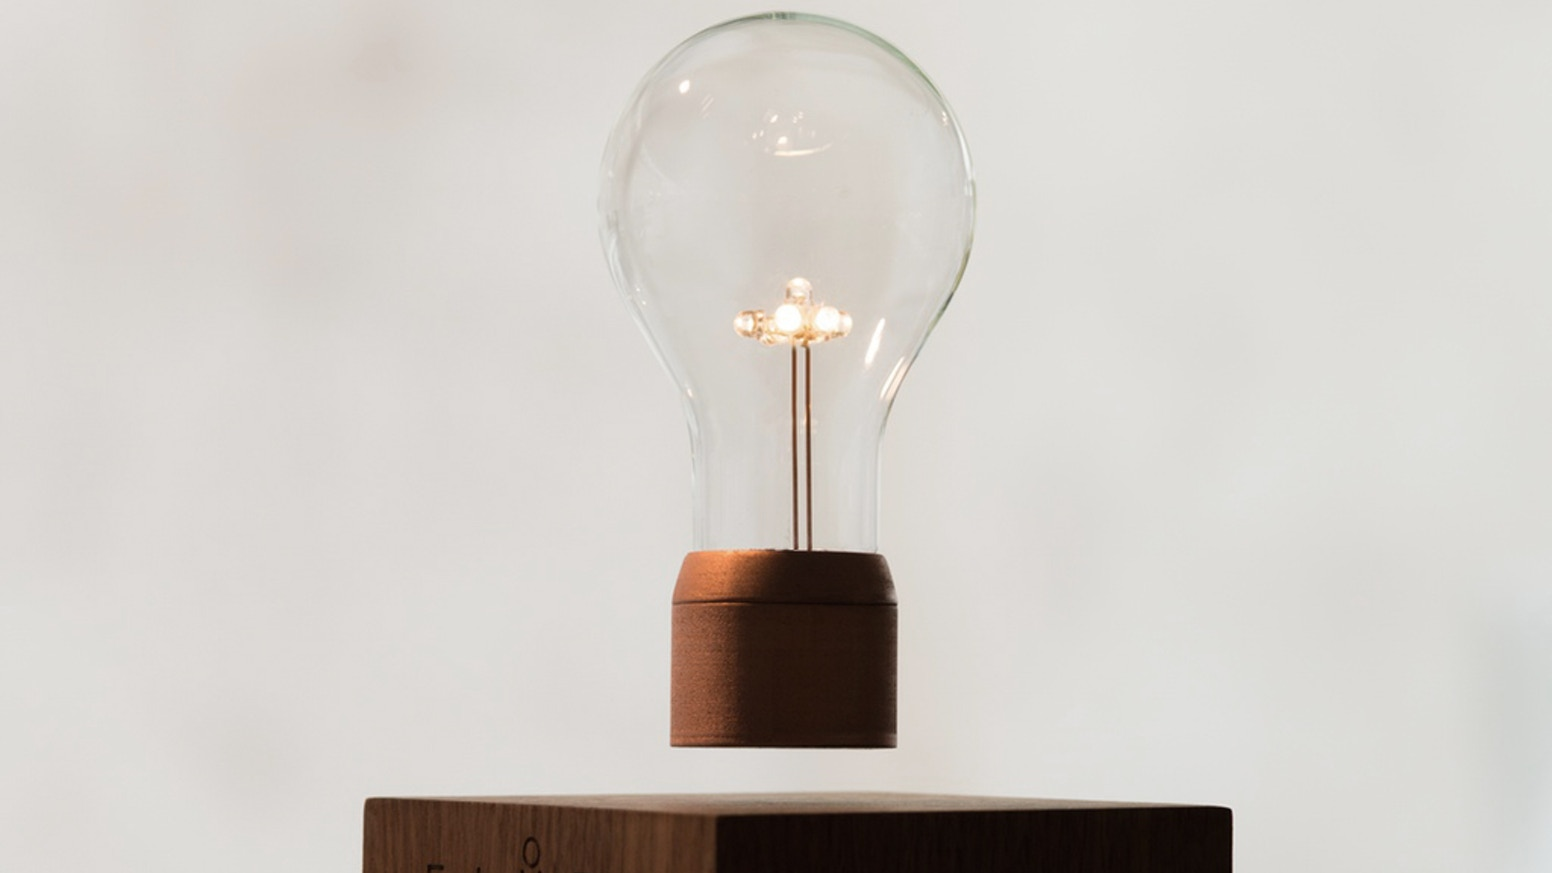 Flyte is a levitating lightbulb powered through the air.